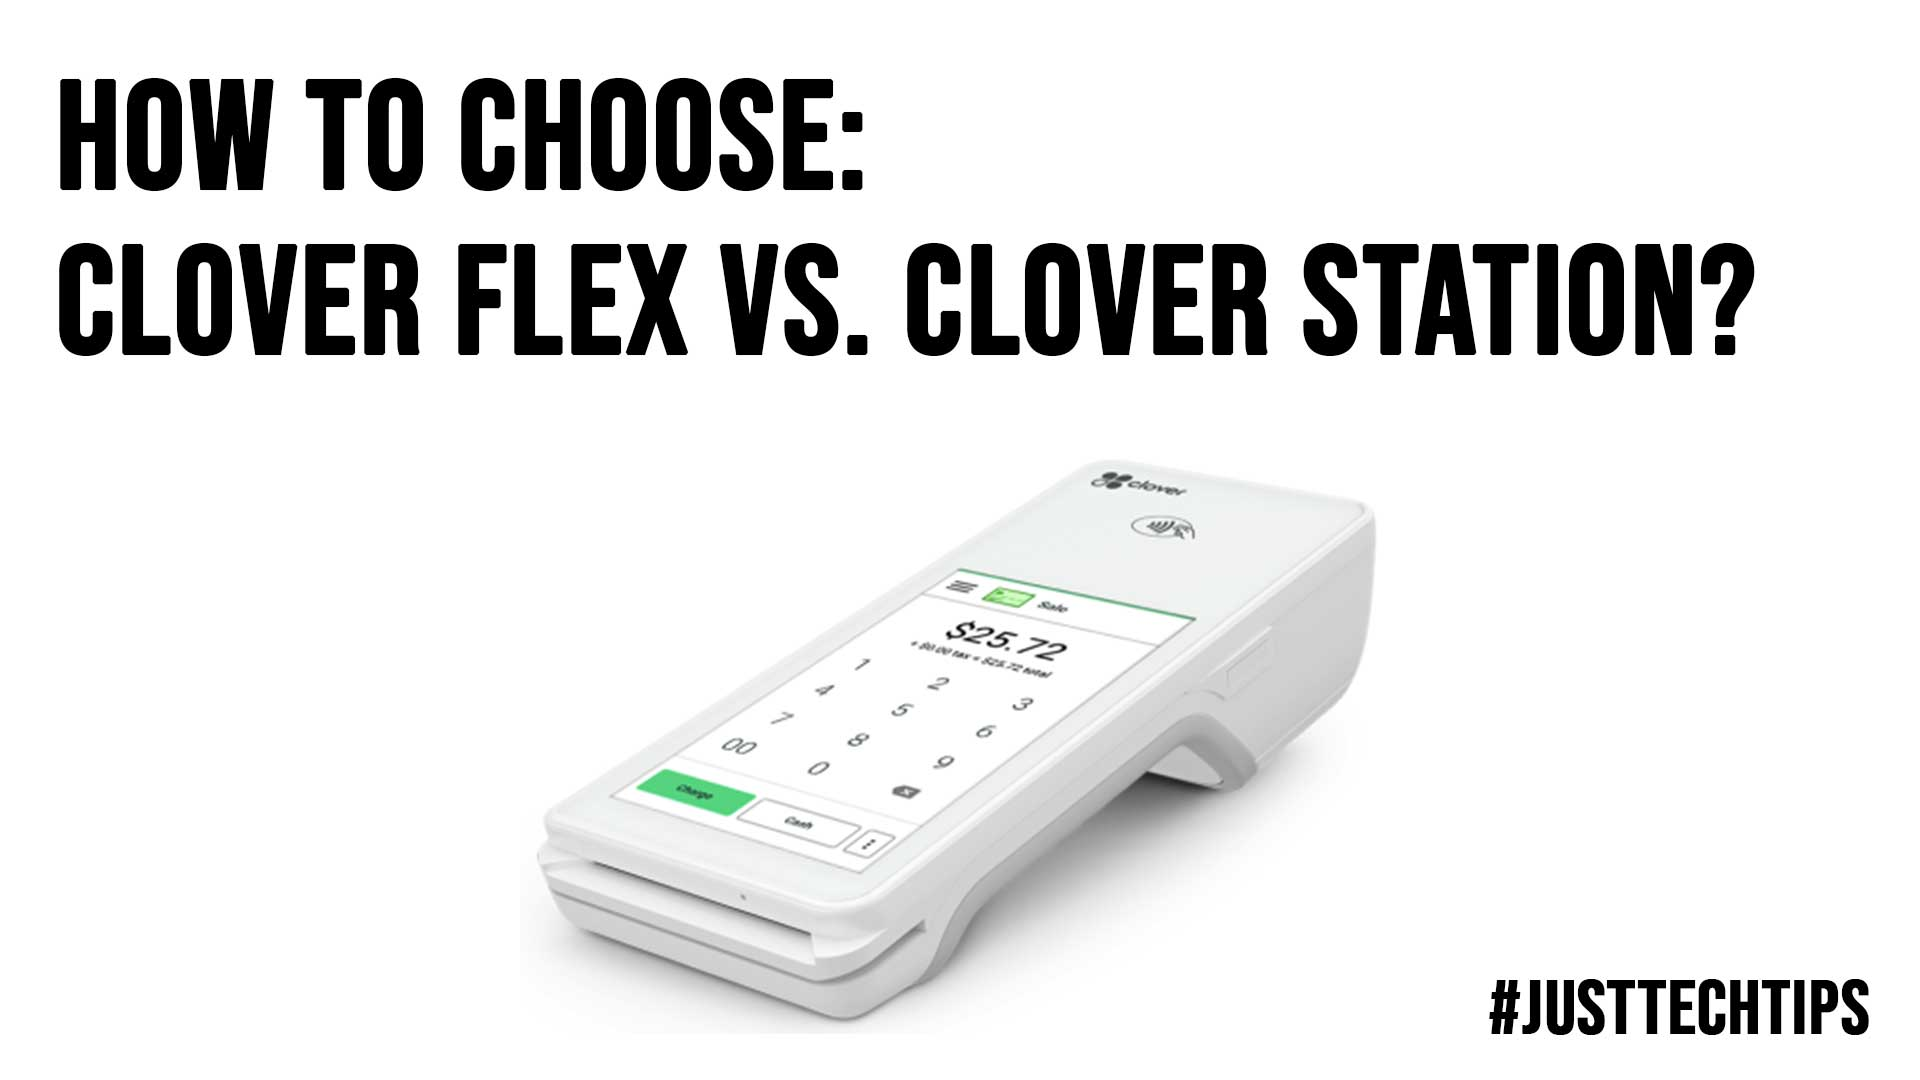 How To Choose Clover Flex vs. Clover Station